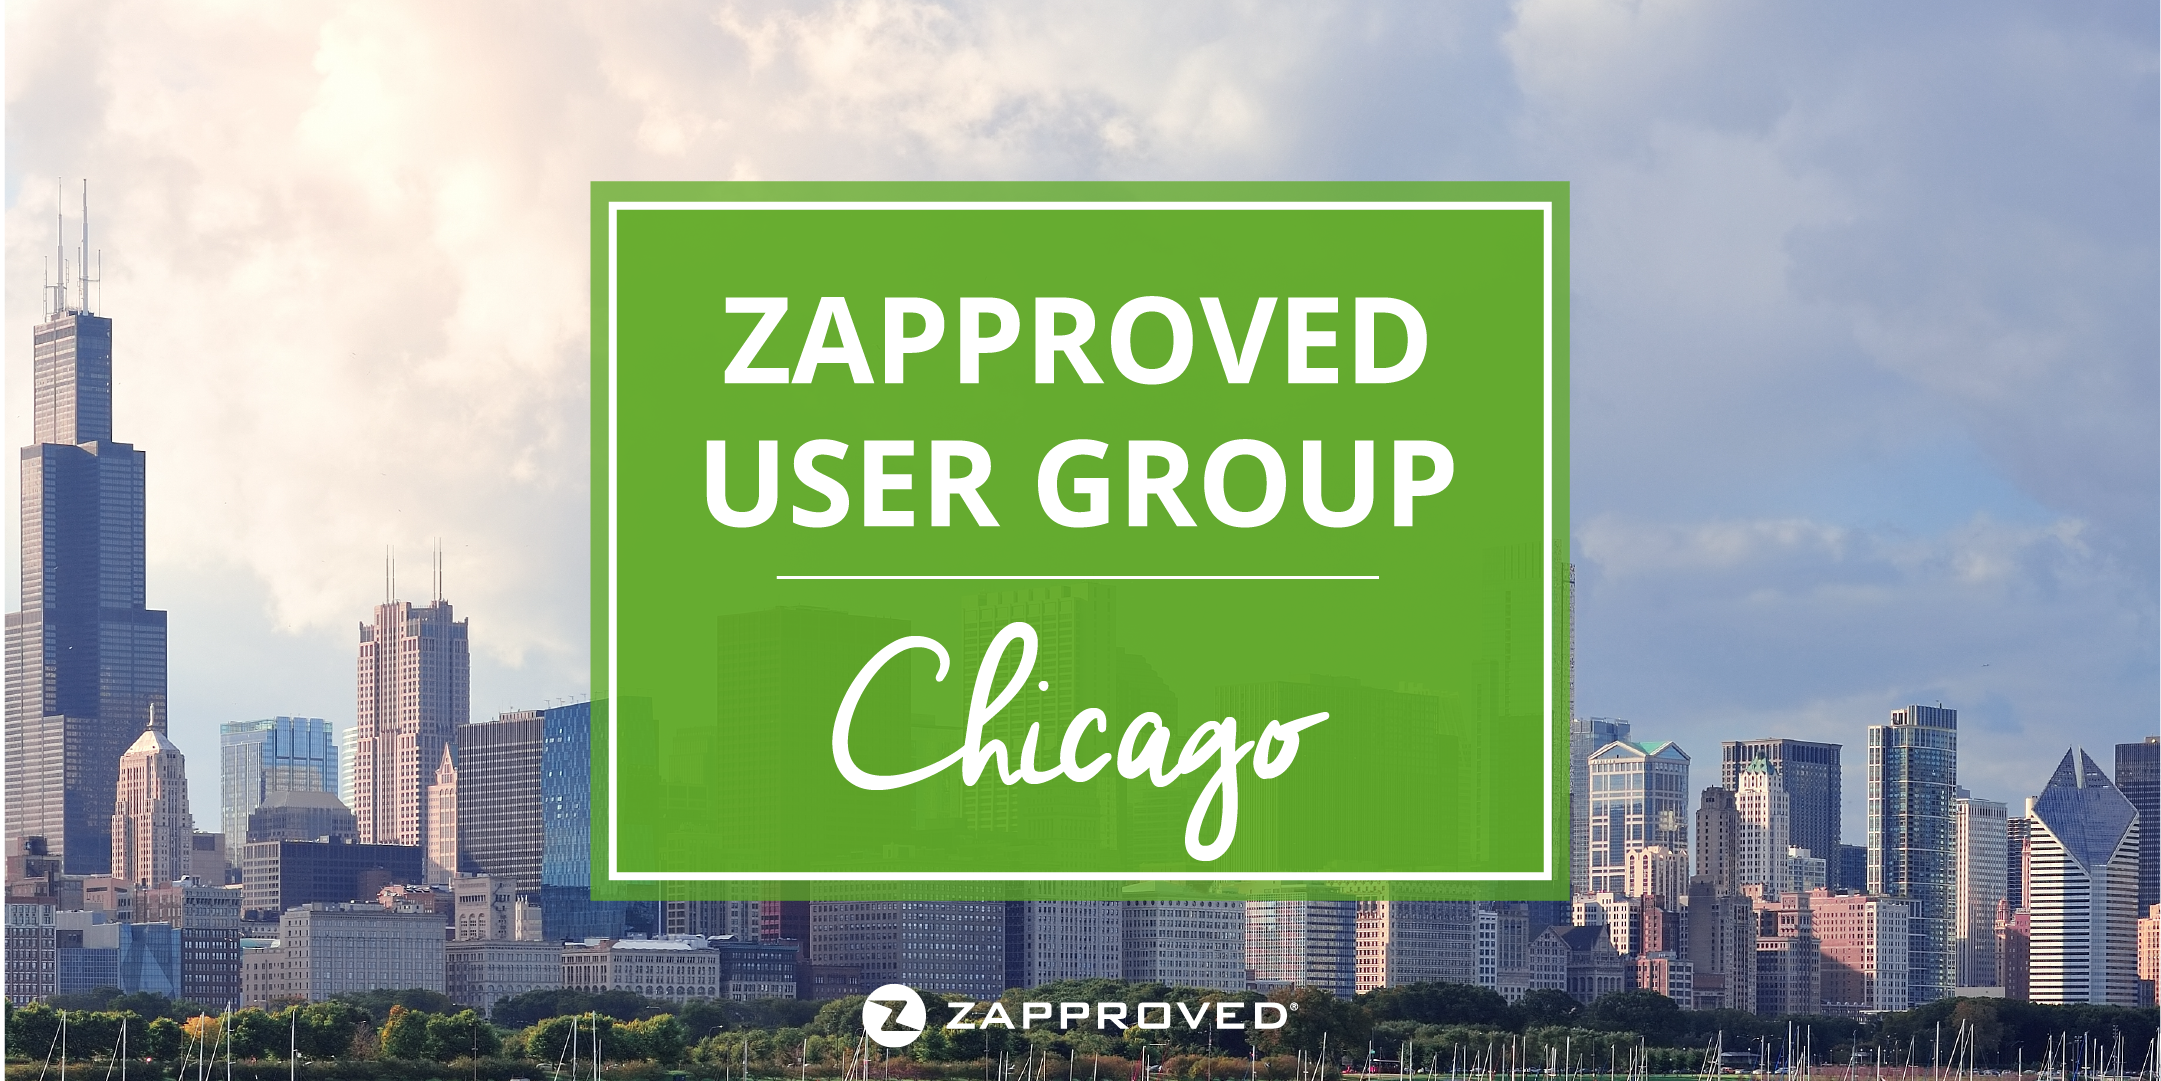 Zaproved User Group - Chicago